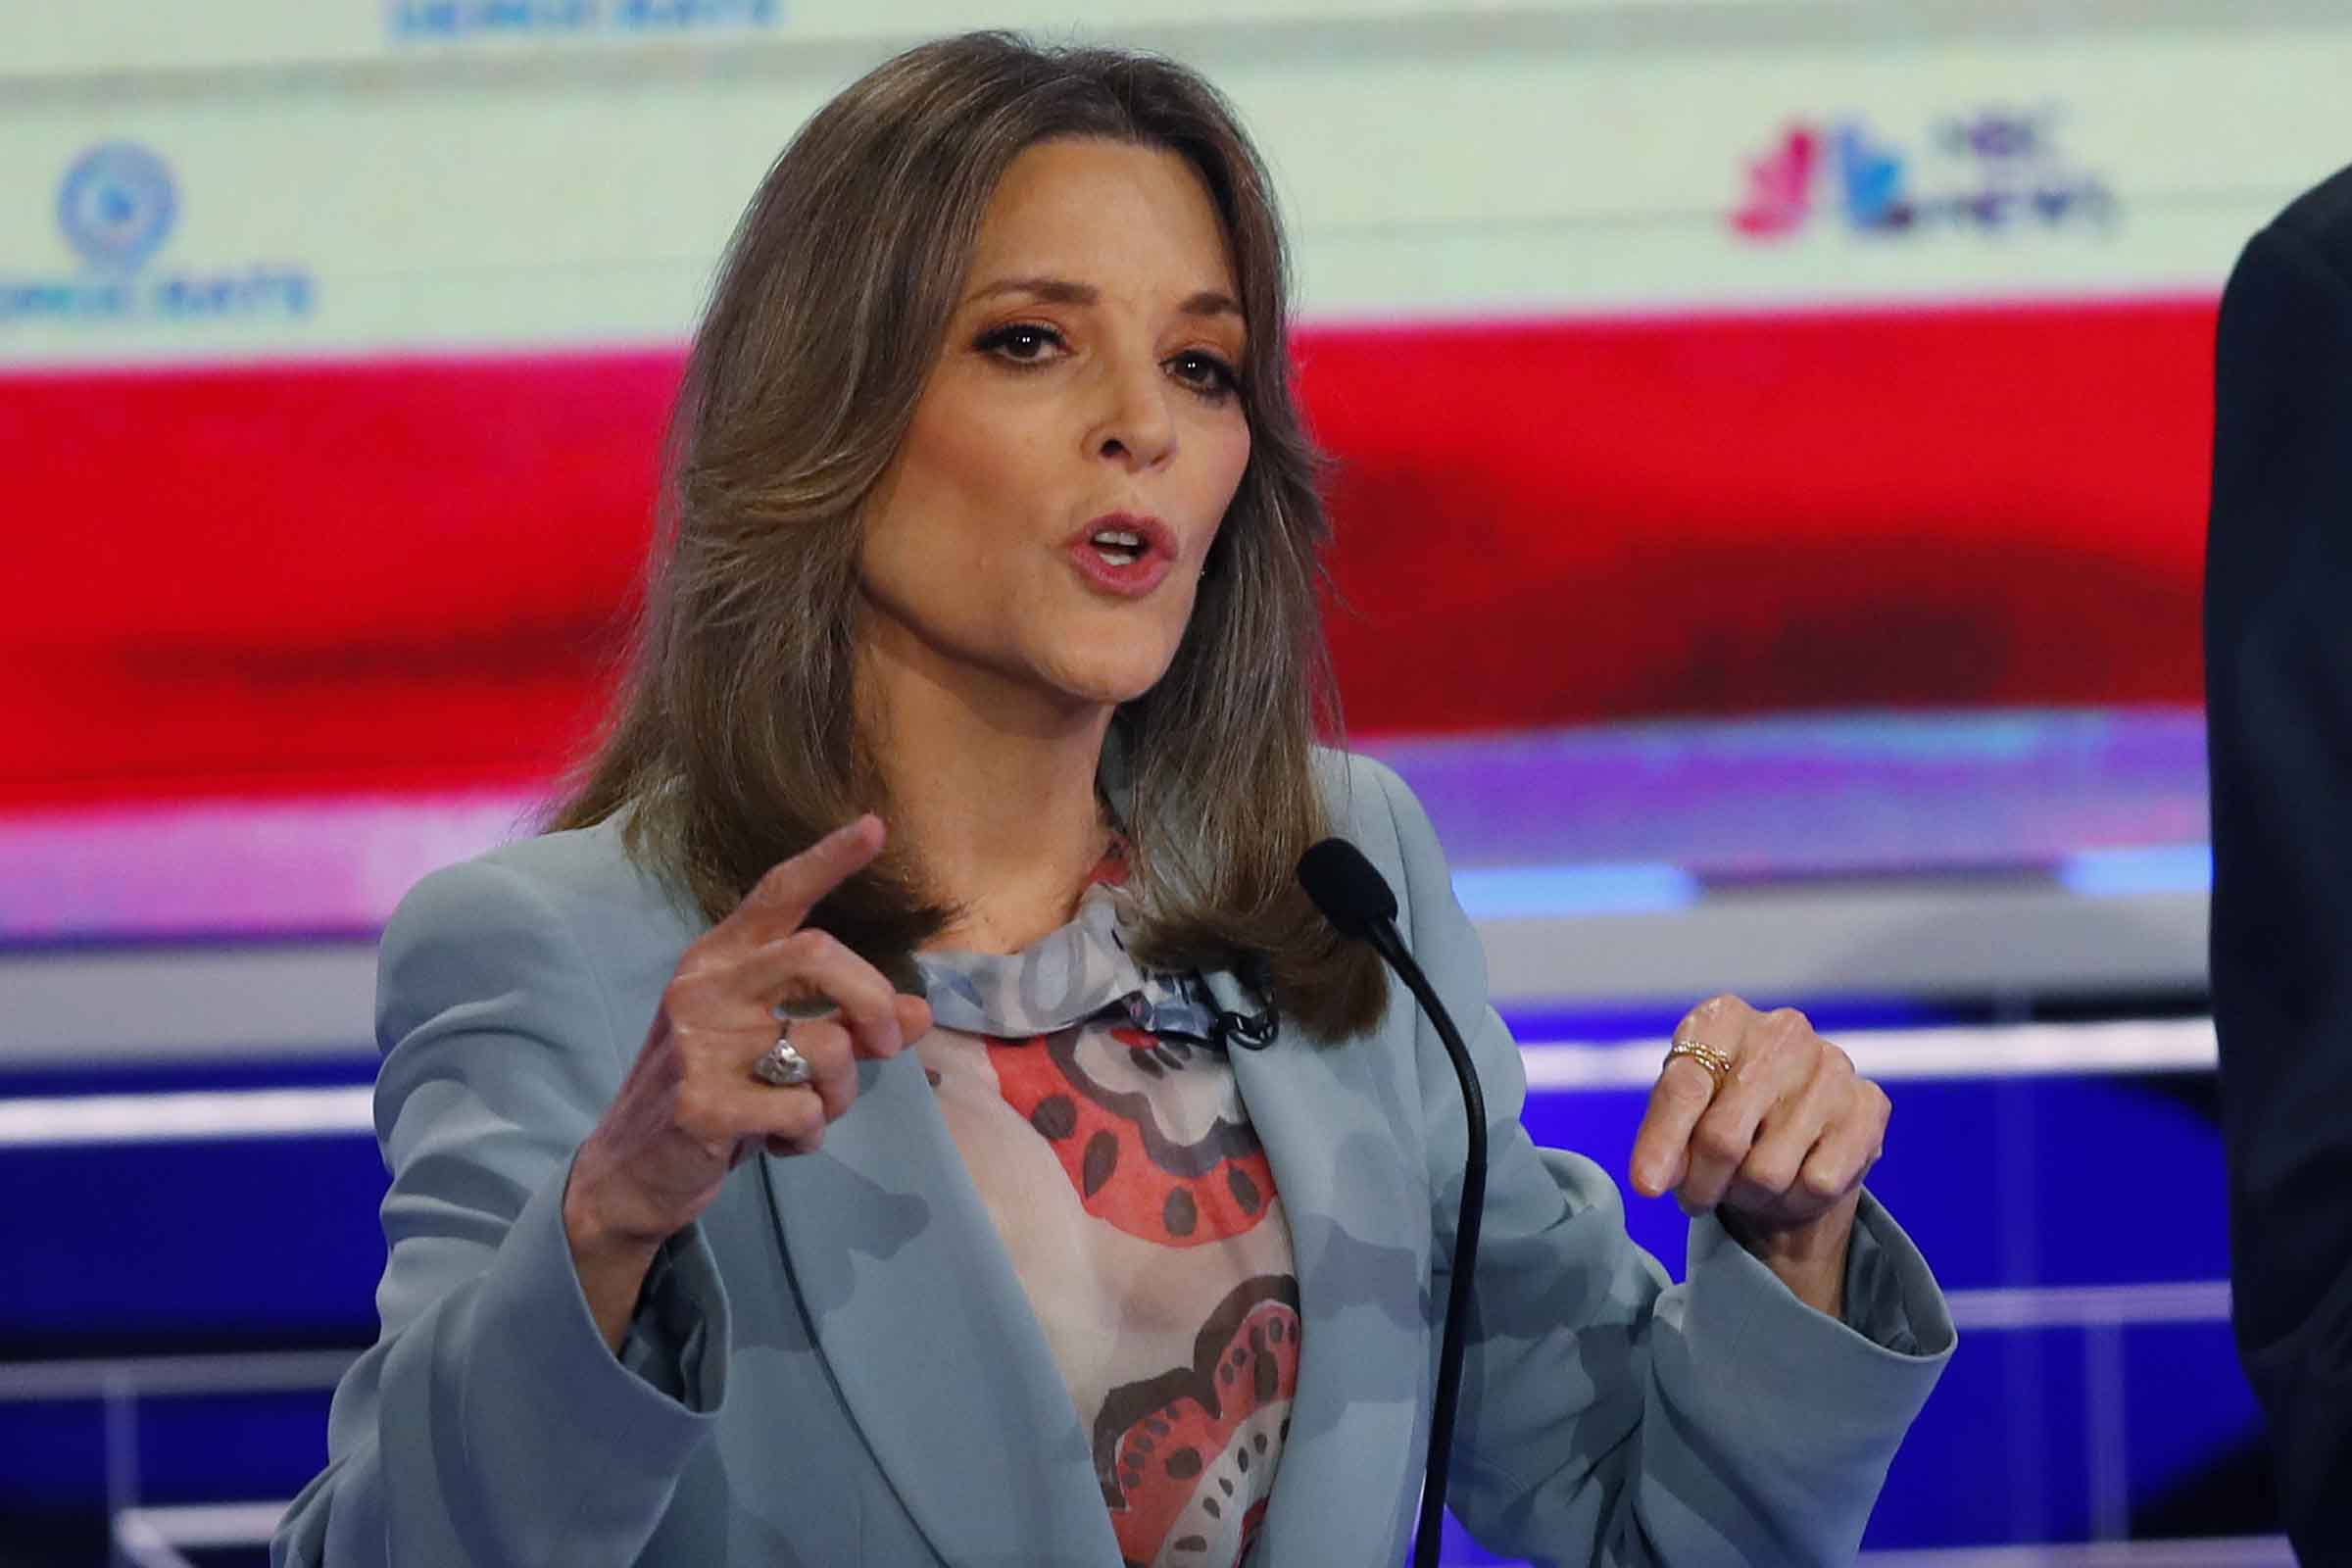 Democratic presidential candidate author Marianne Williamson speaks during the Democratic primary debate hosted by NBC News at the Adrienne Arsht Center for the Performing Arts, Thursday, June 27, 2019, in Miami.